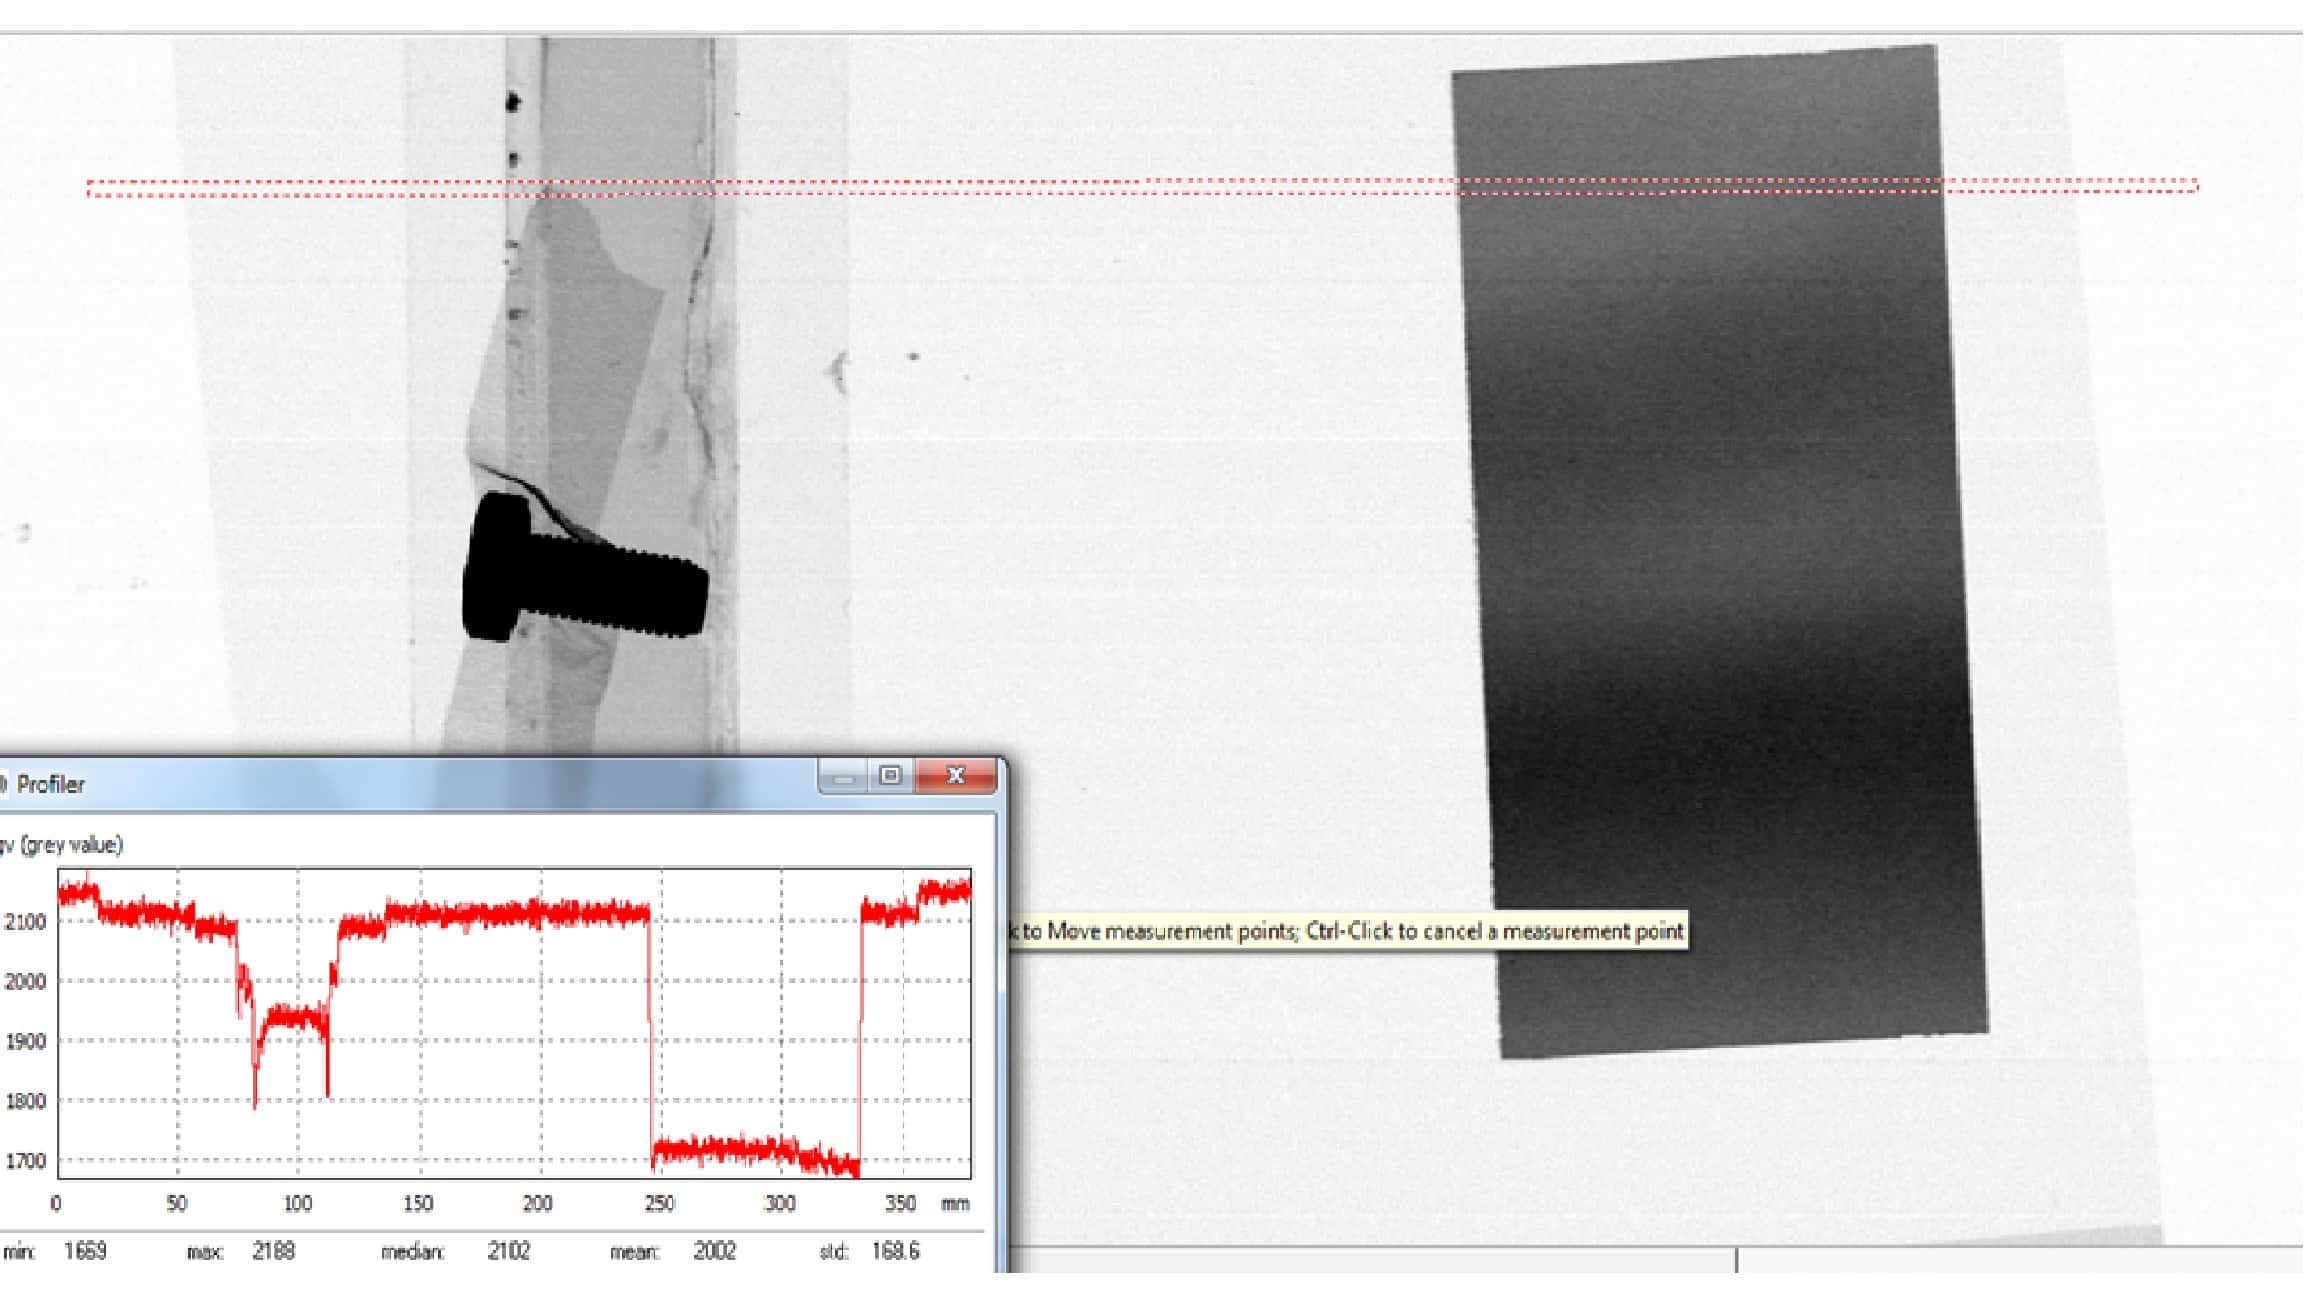 X-ray inspection of lithium battery - product & process control 1